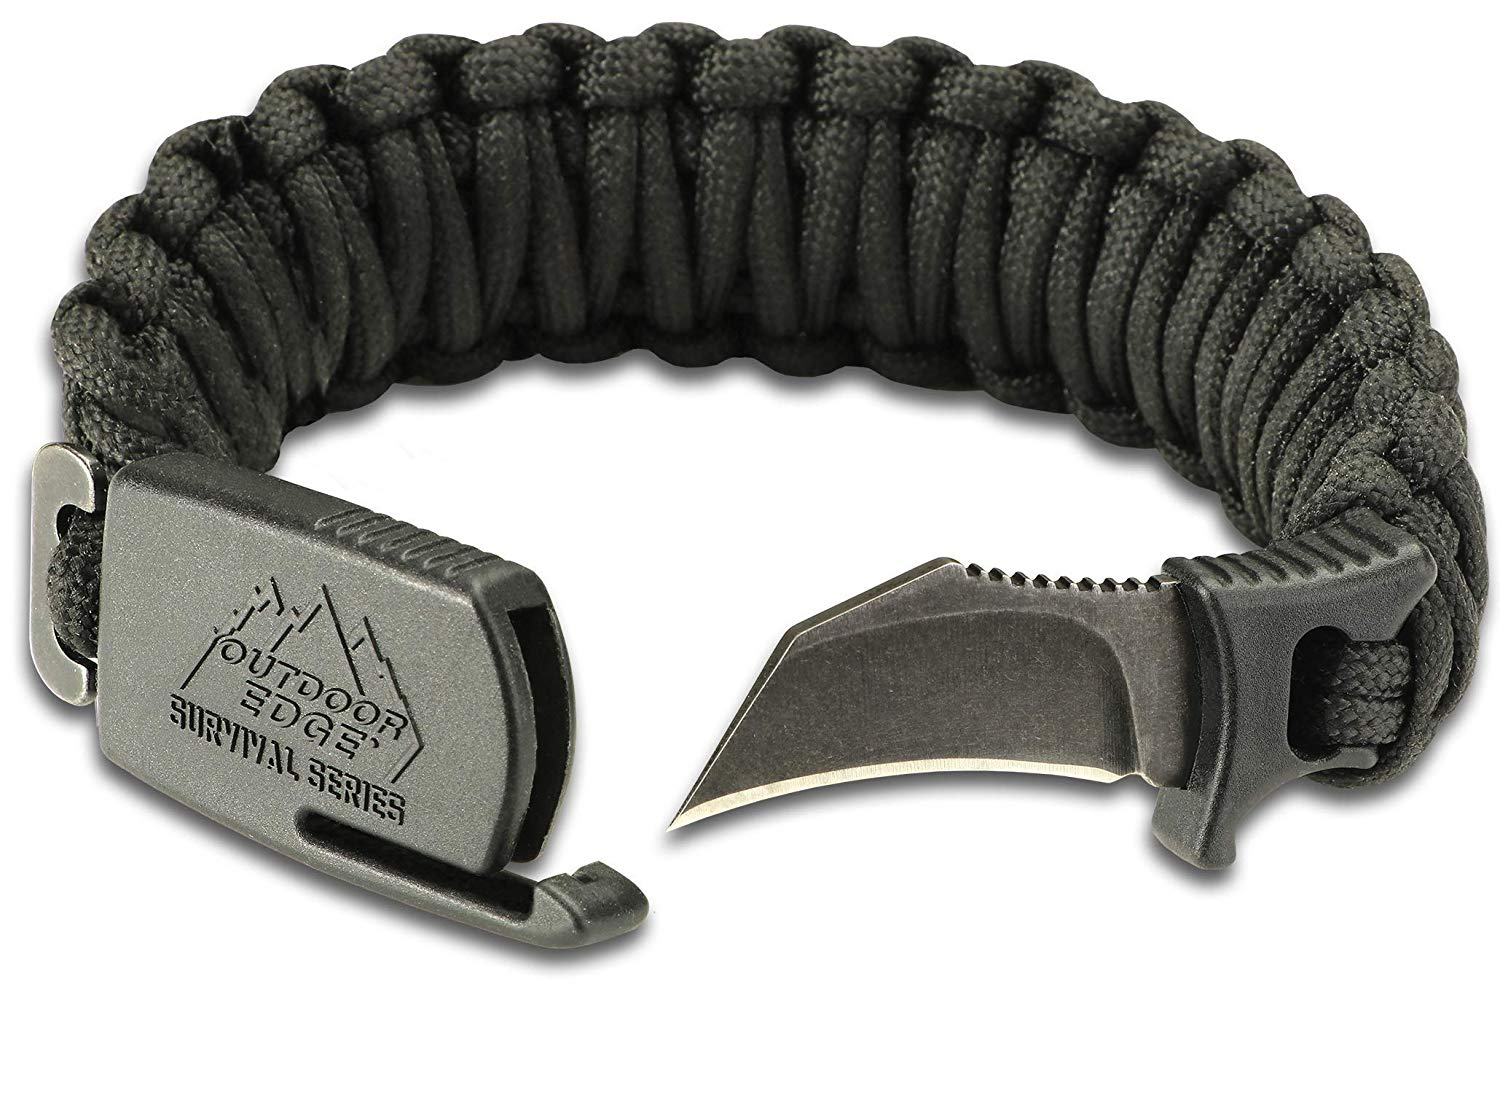 Tactical Edge 4 In 1 Buckle For Webbing And Paracord Buckle Bracelets